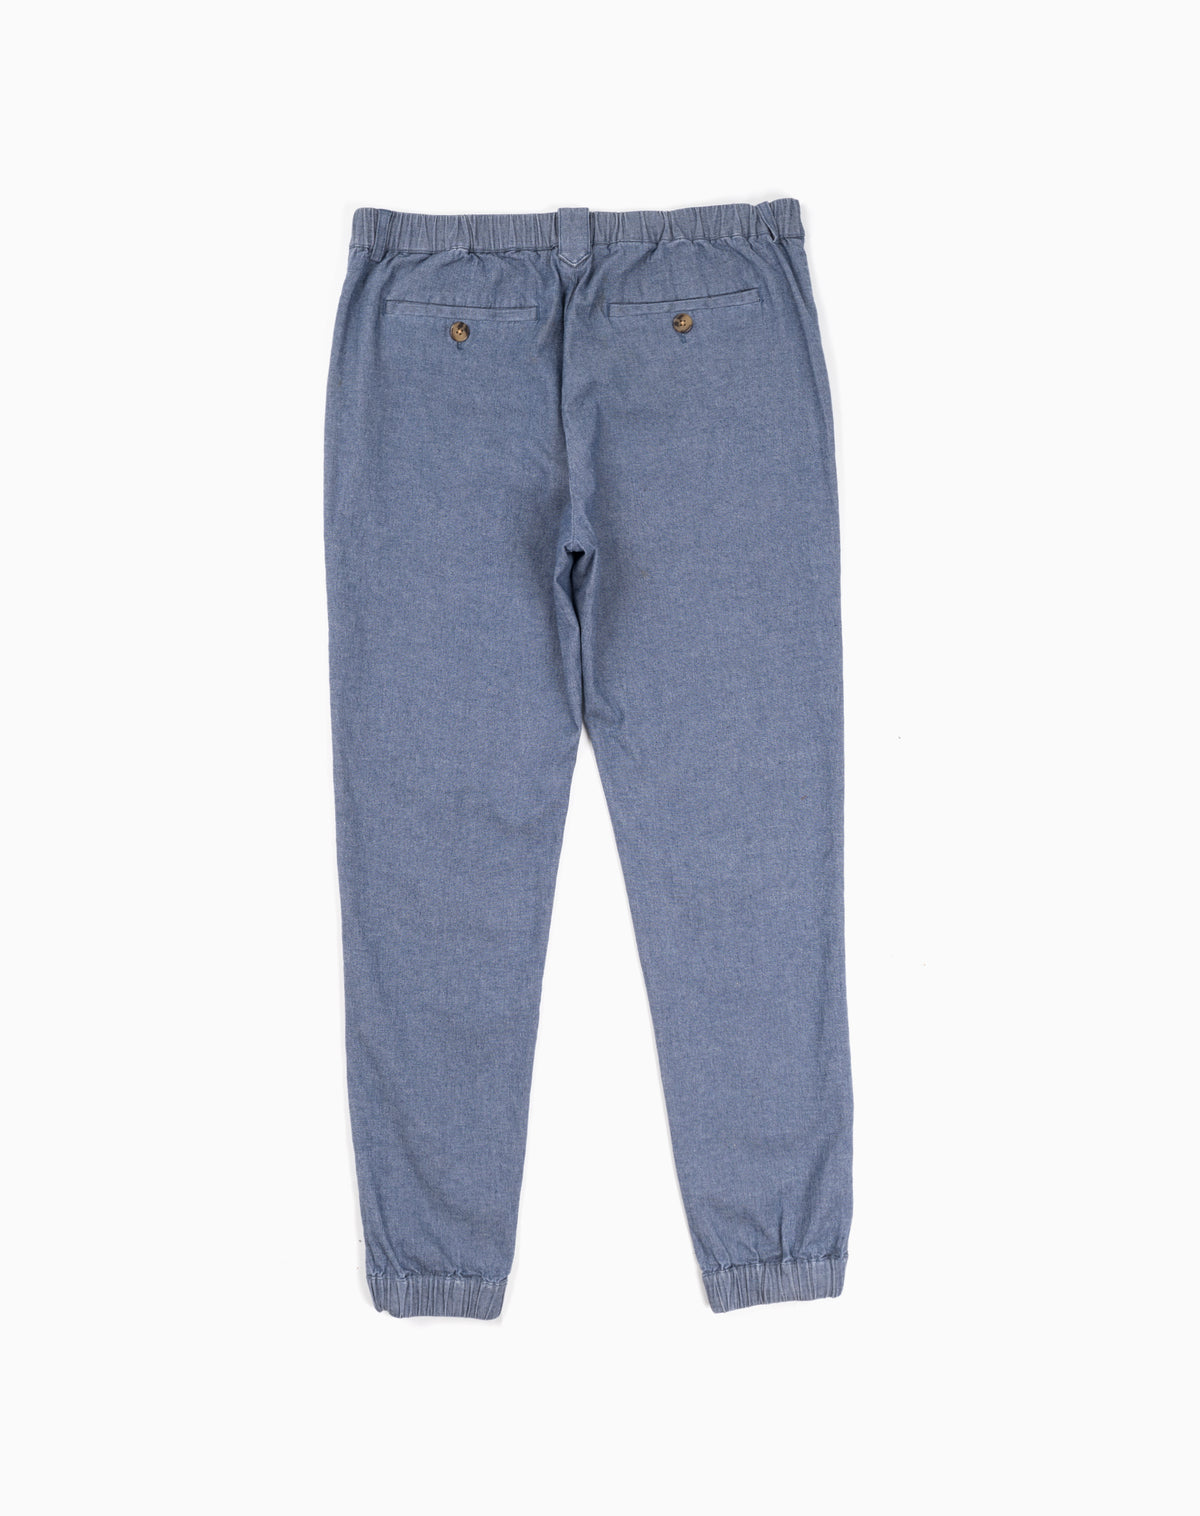 Deck Jogger in Chambray